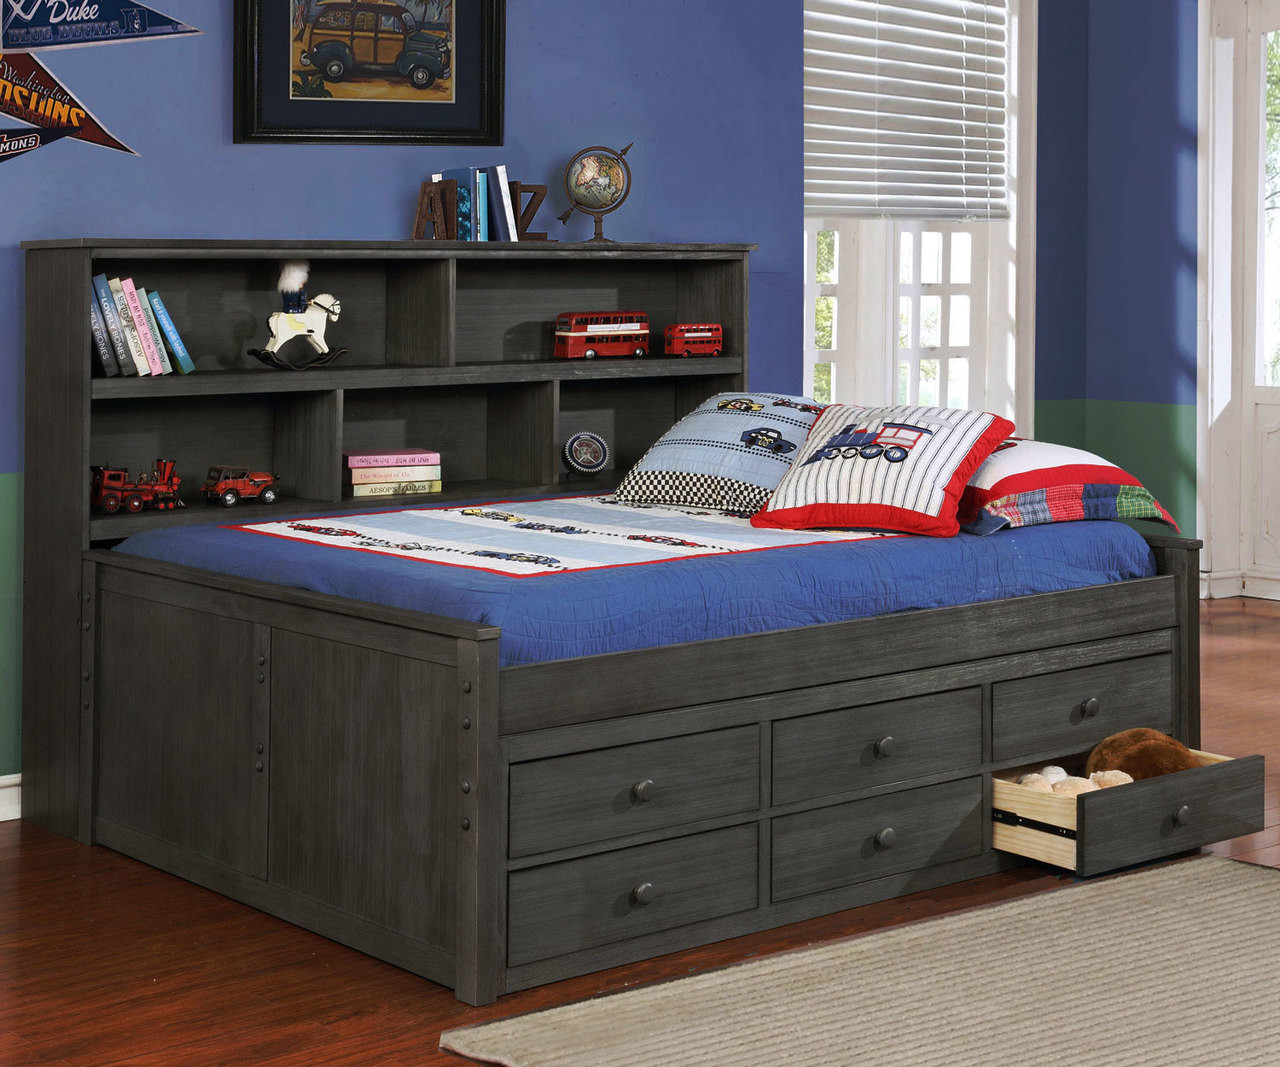 Allen House Bookcase Captains Daybed Full Size Weathered Dark Gray